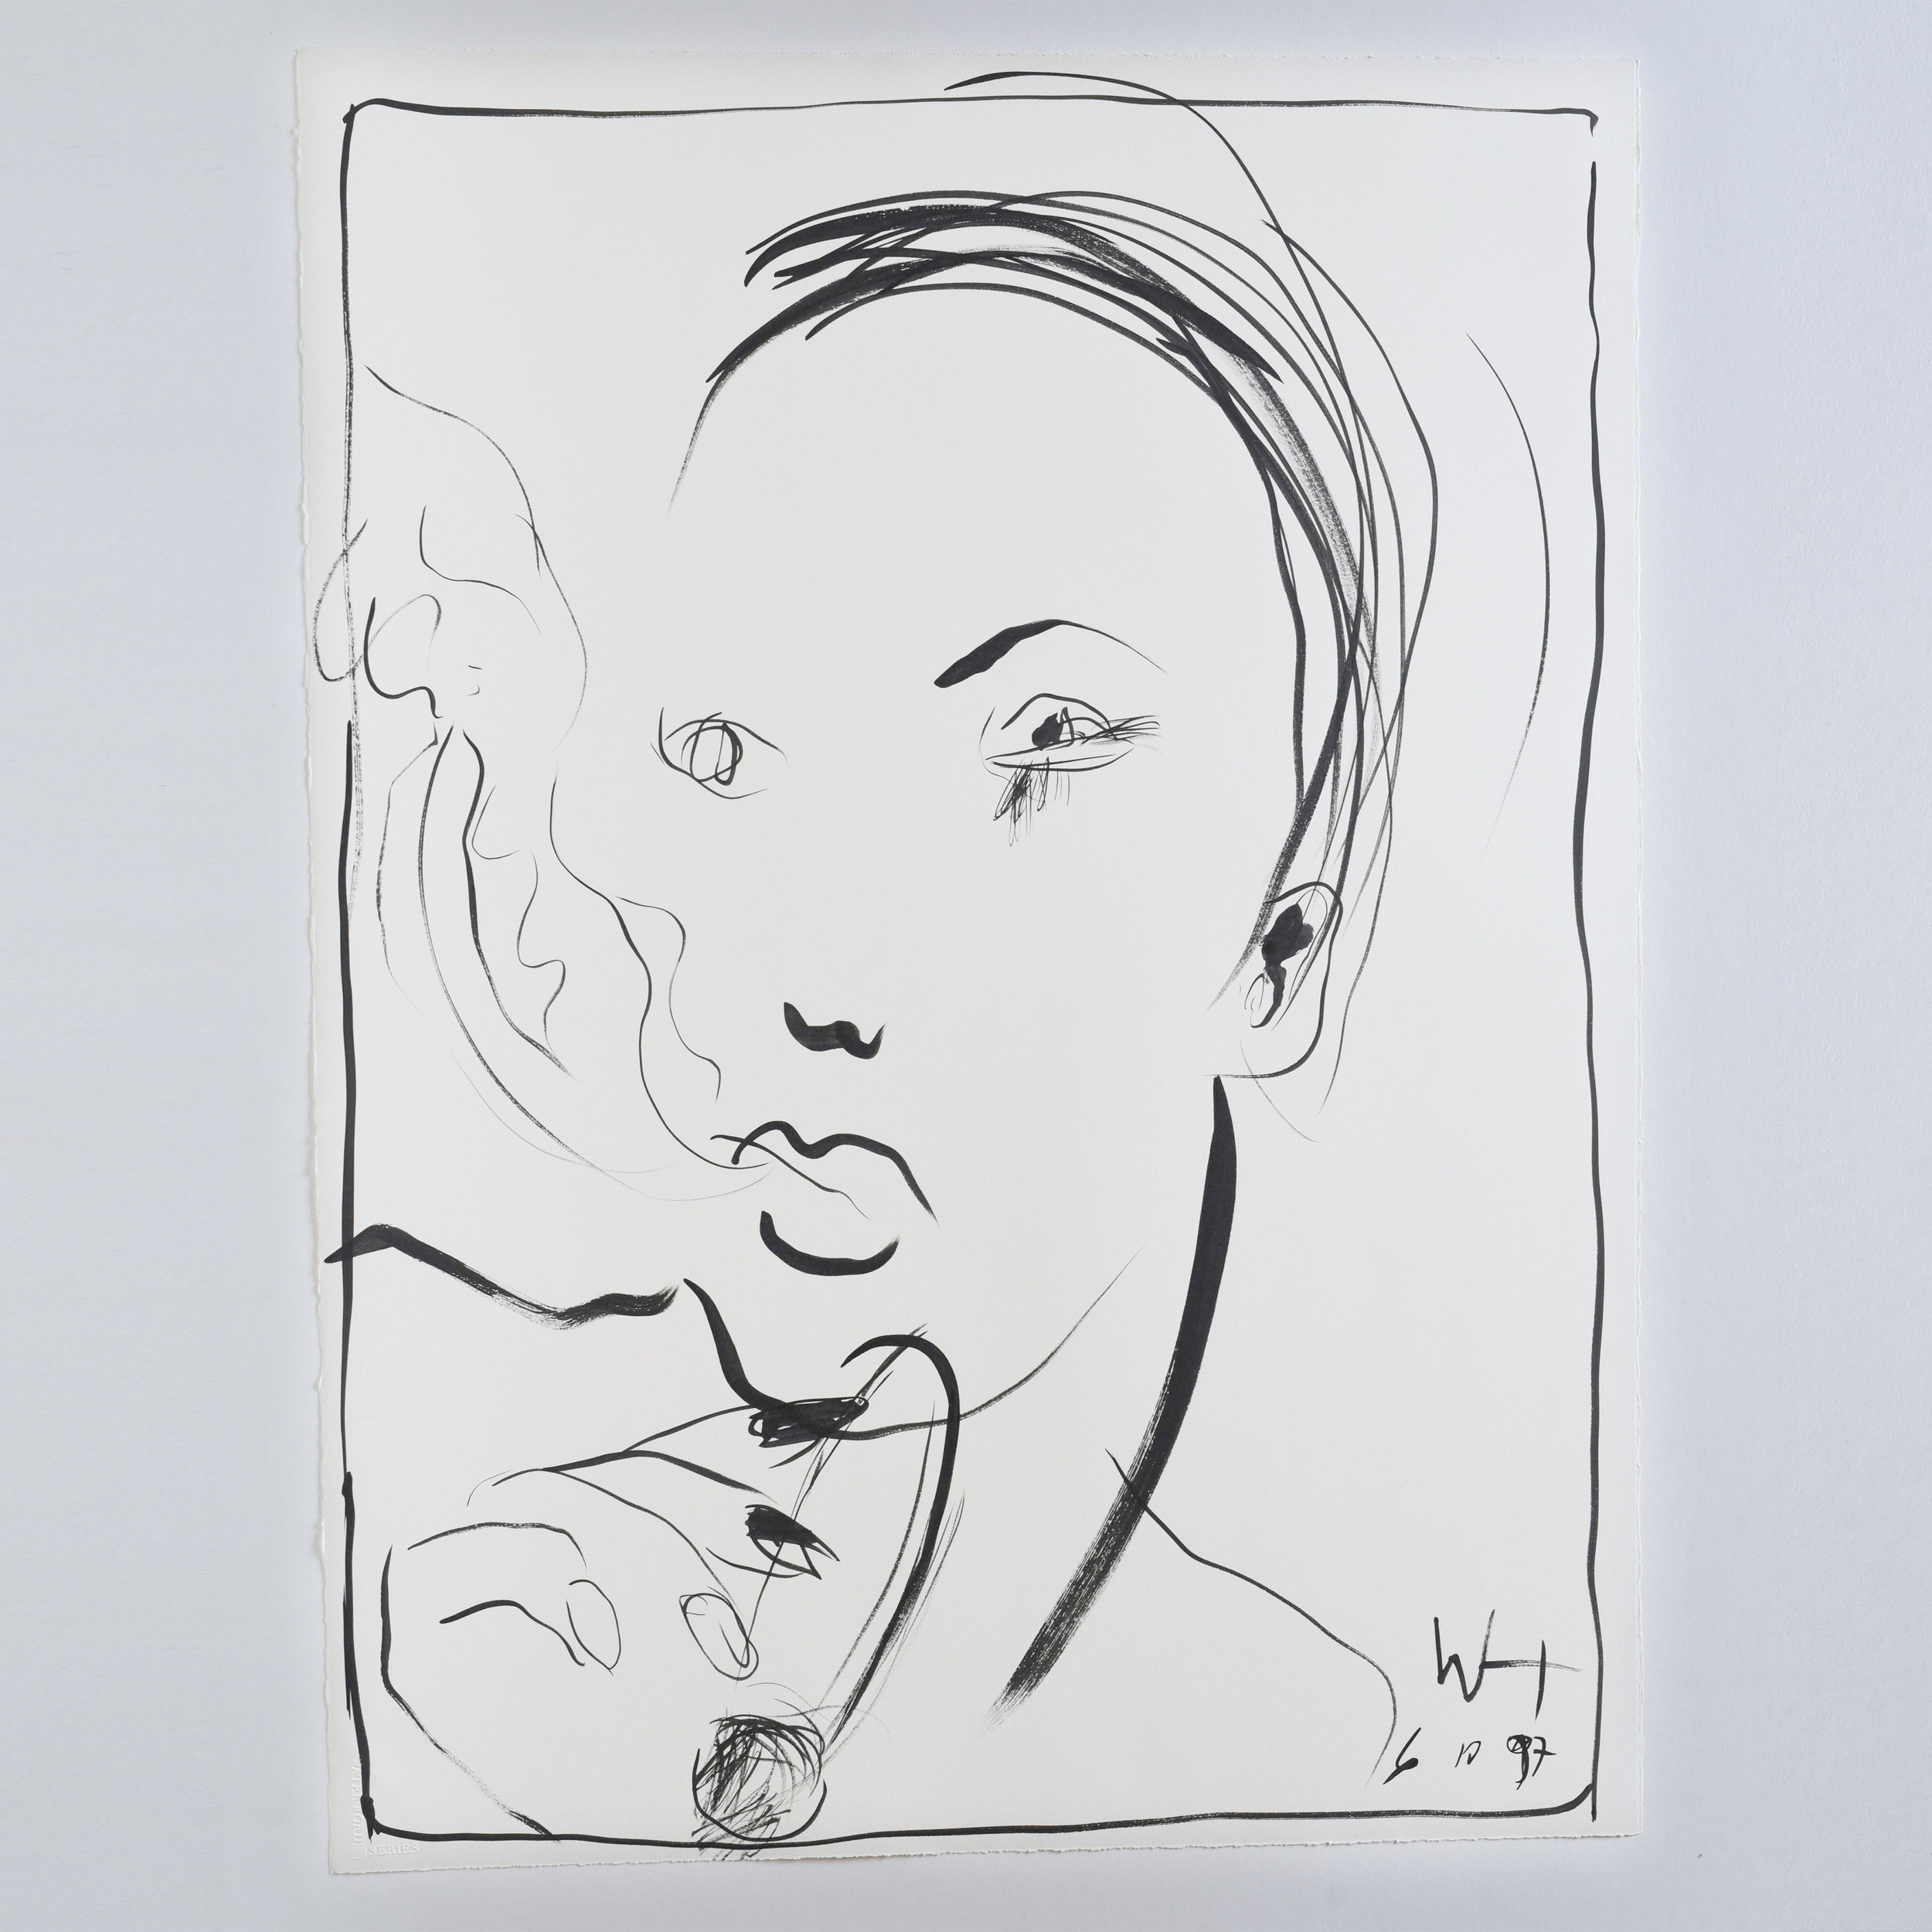 Line drawing of a person smoking using brush pen and ink on art paper